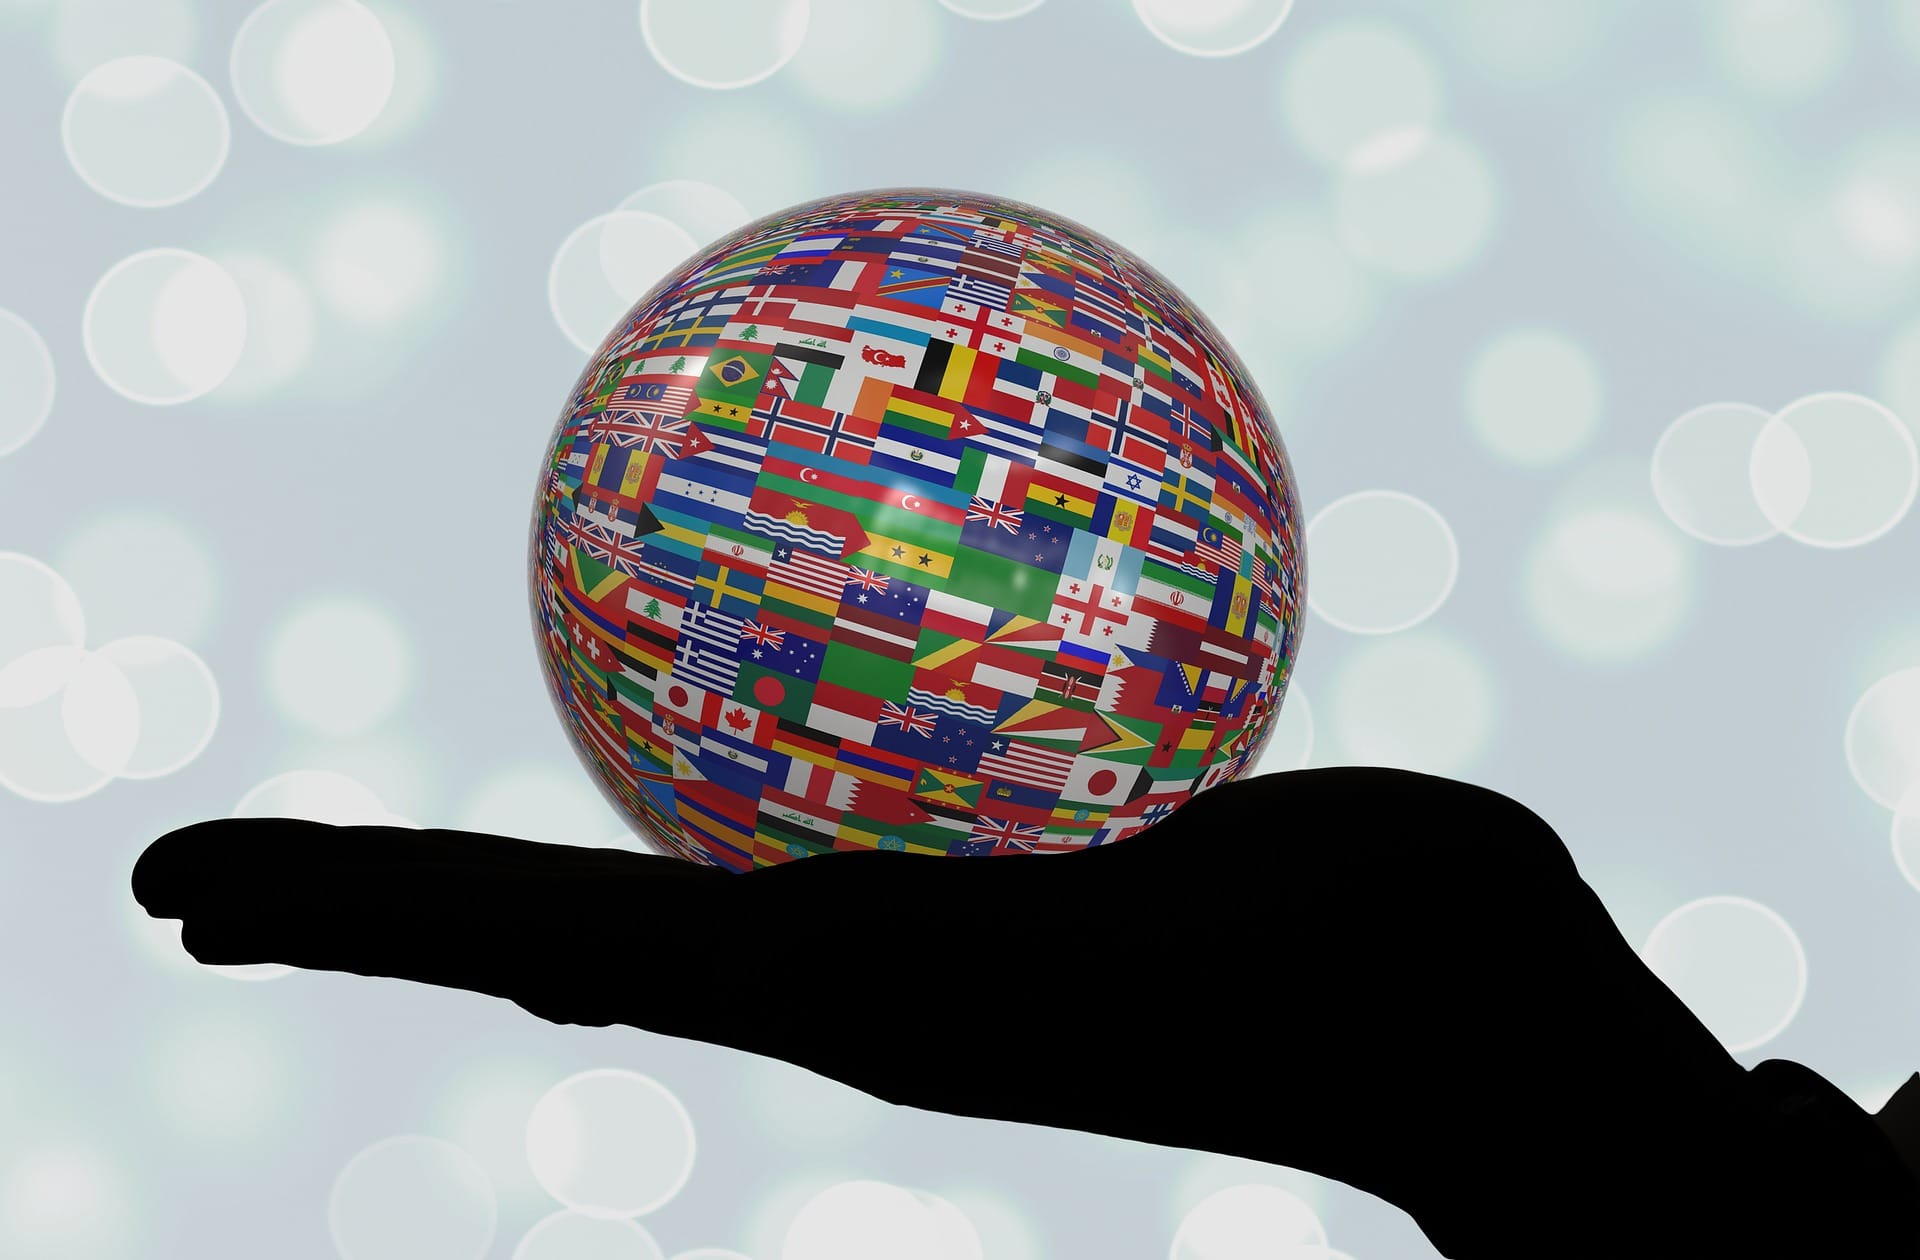 Successful international expansion involves meeting the language and currency requirements of consumers.